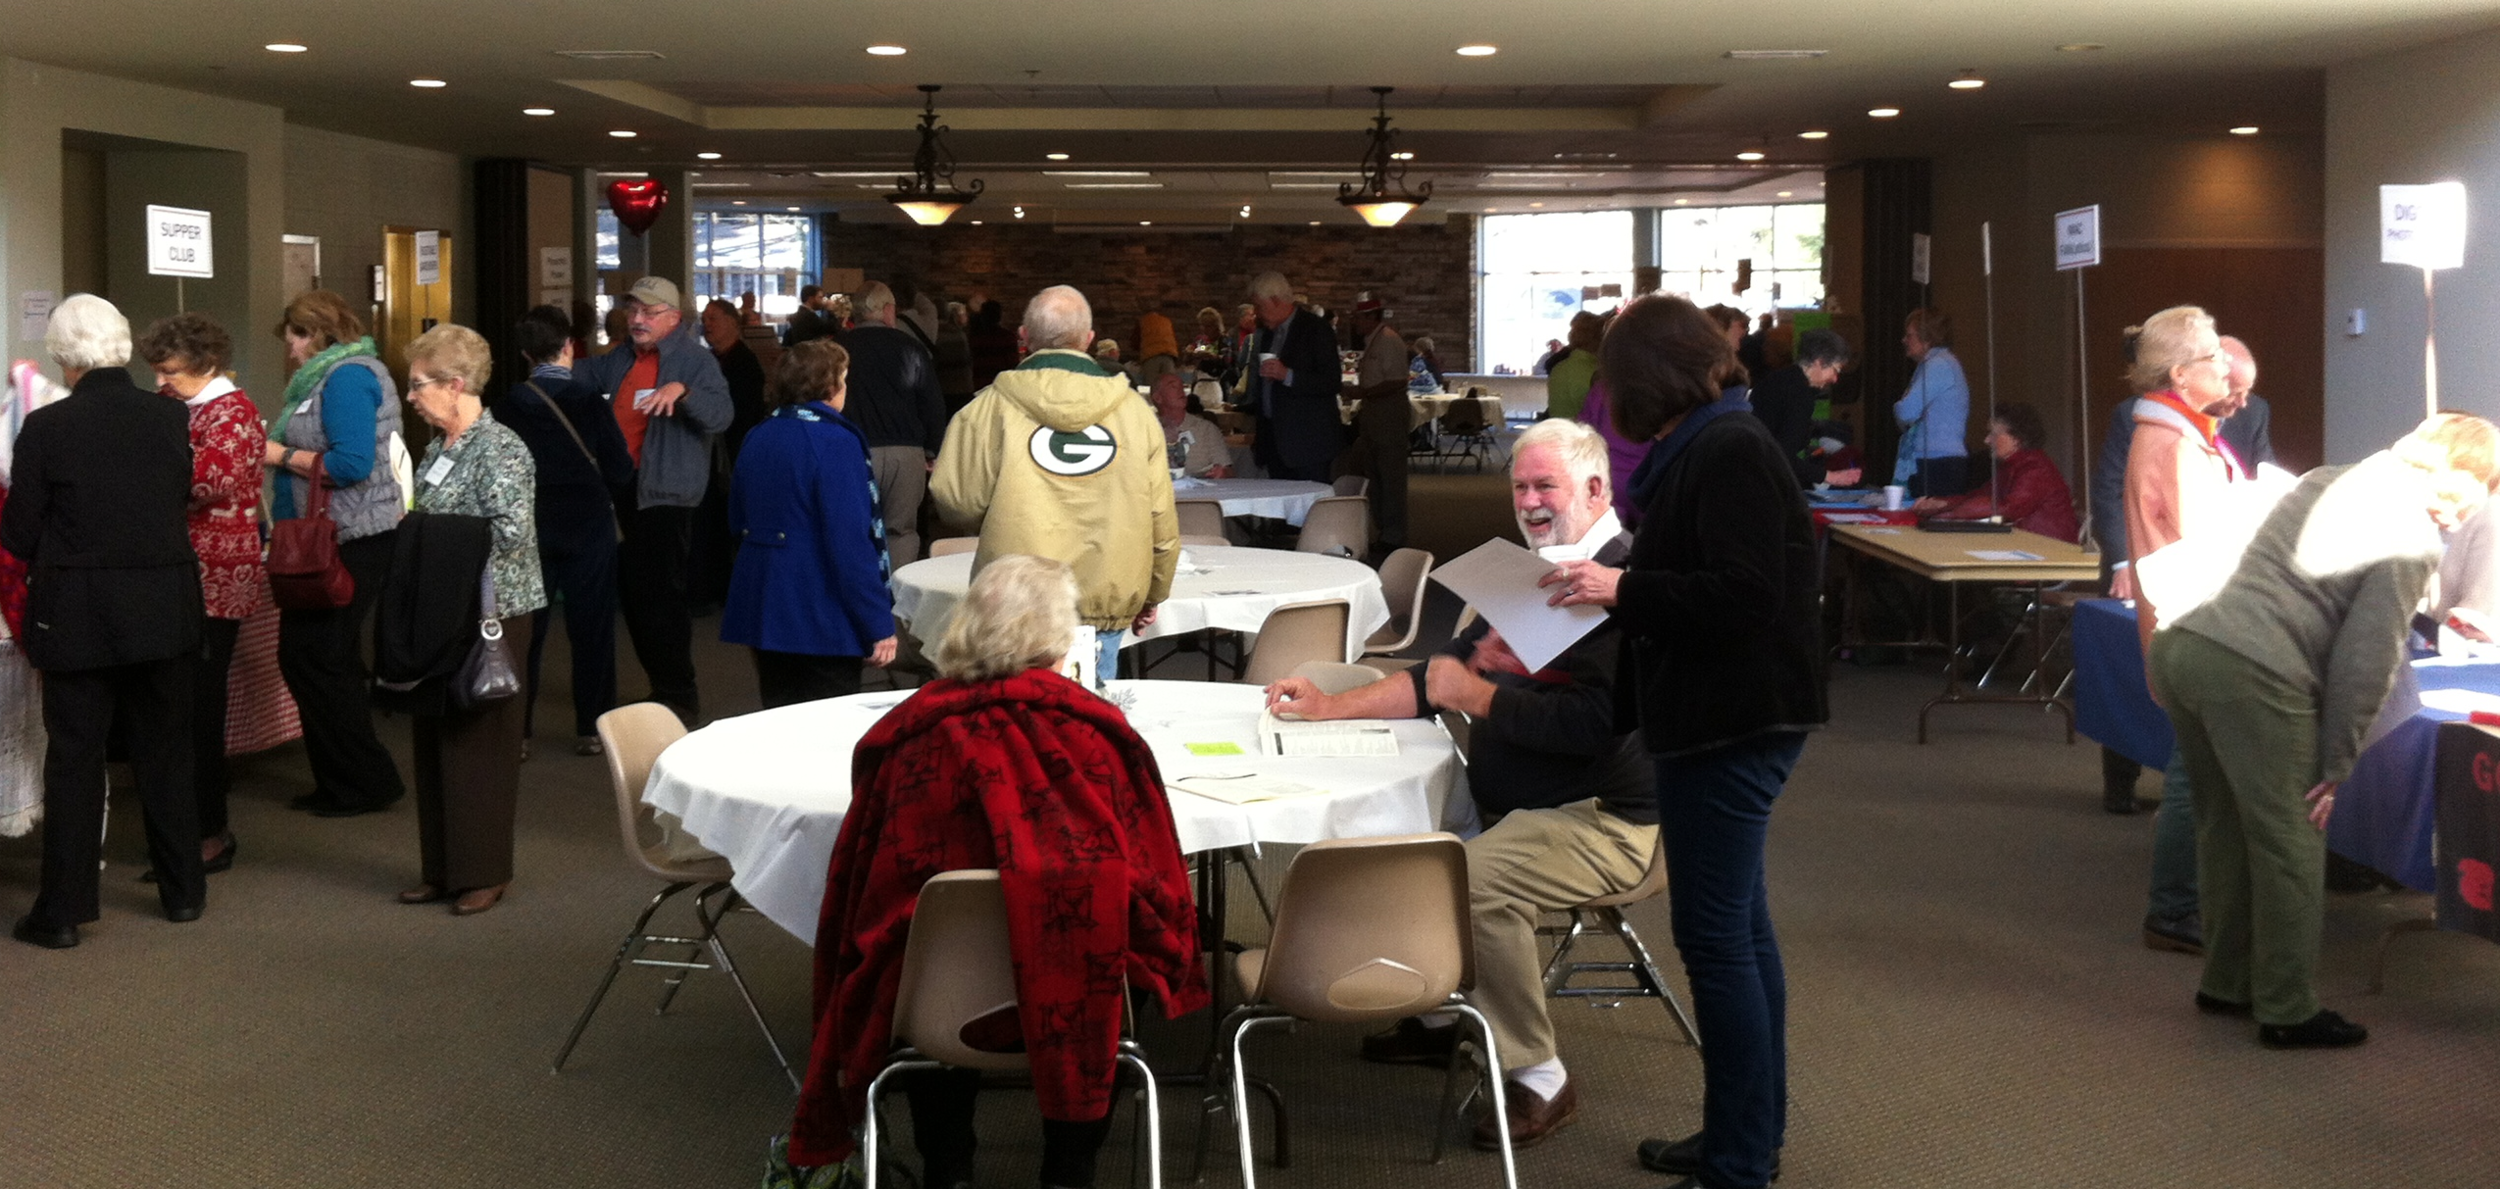 January Registration and Information Day at Central